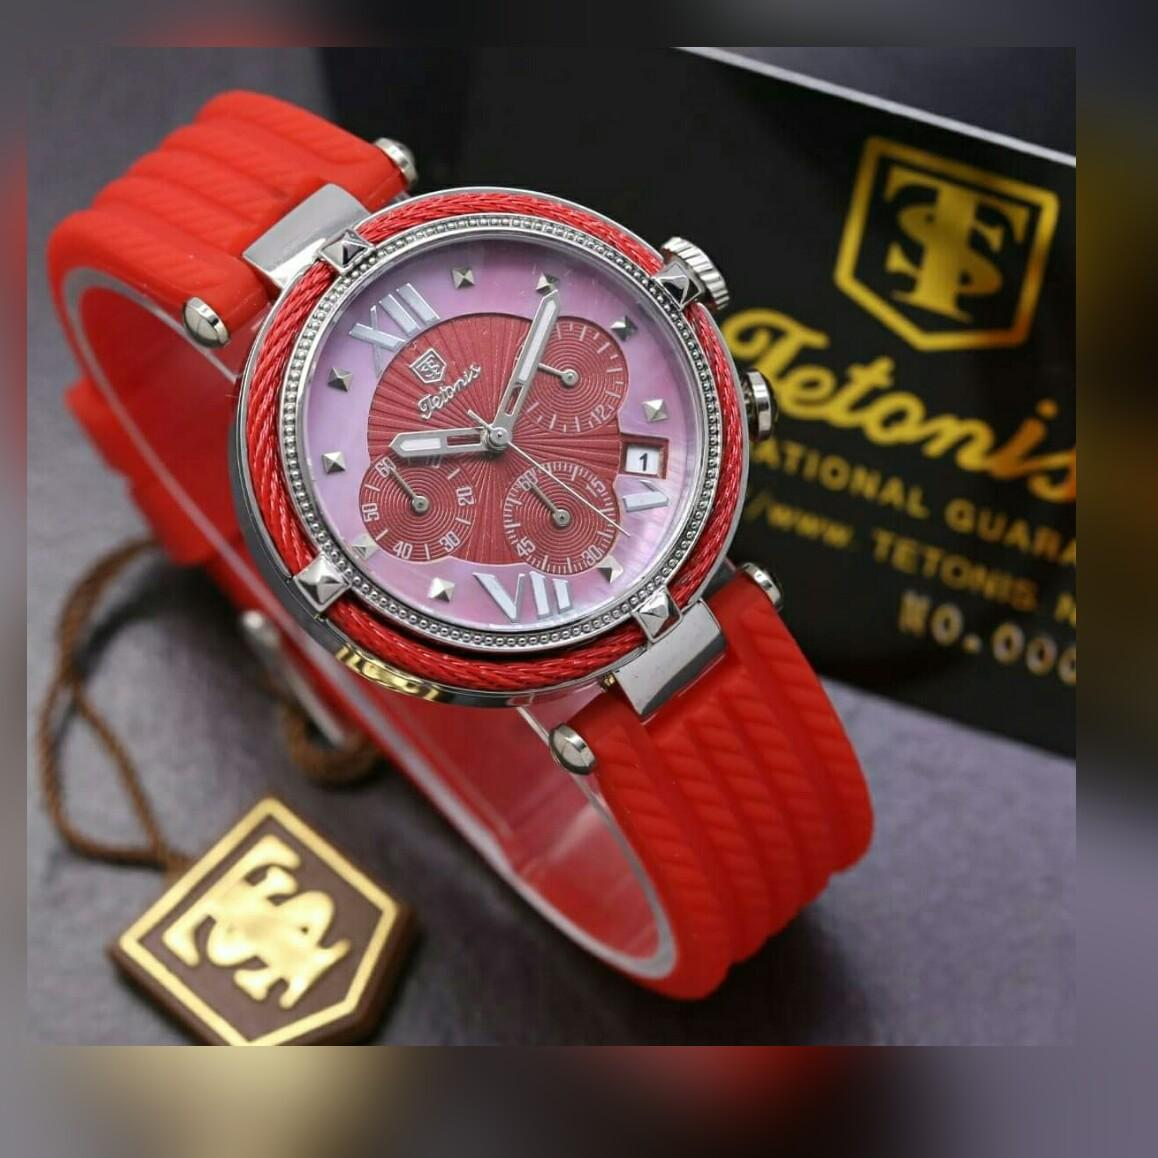 Jam Tangan Tetonis Wanita Gc Leather Model Casual Rubber Strap Chrono On Aktif